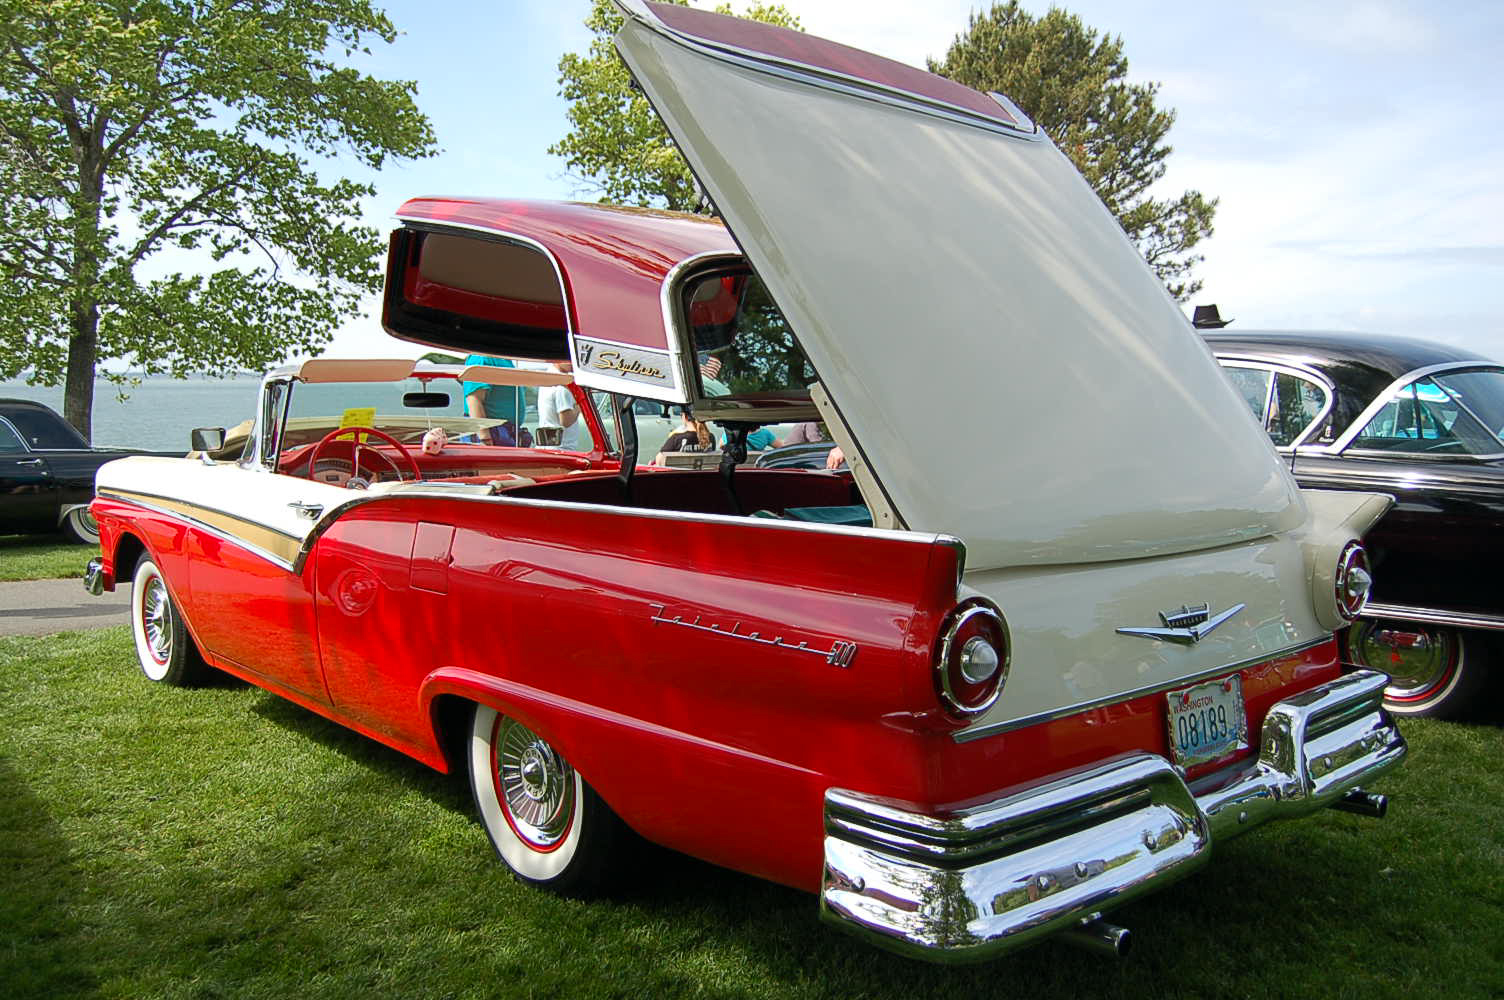 1957 Ford Fairlane Retractable Hardtop Photos and Specs from MadChrome